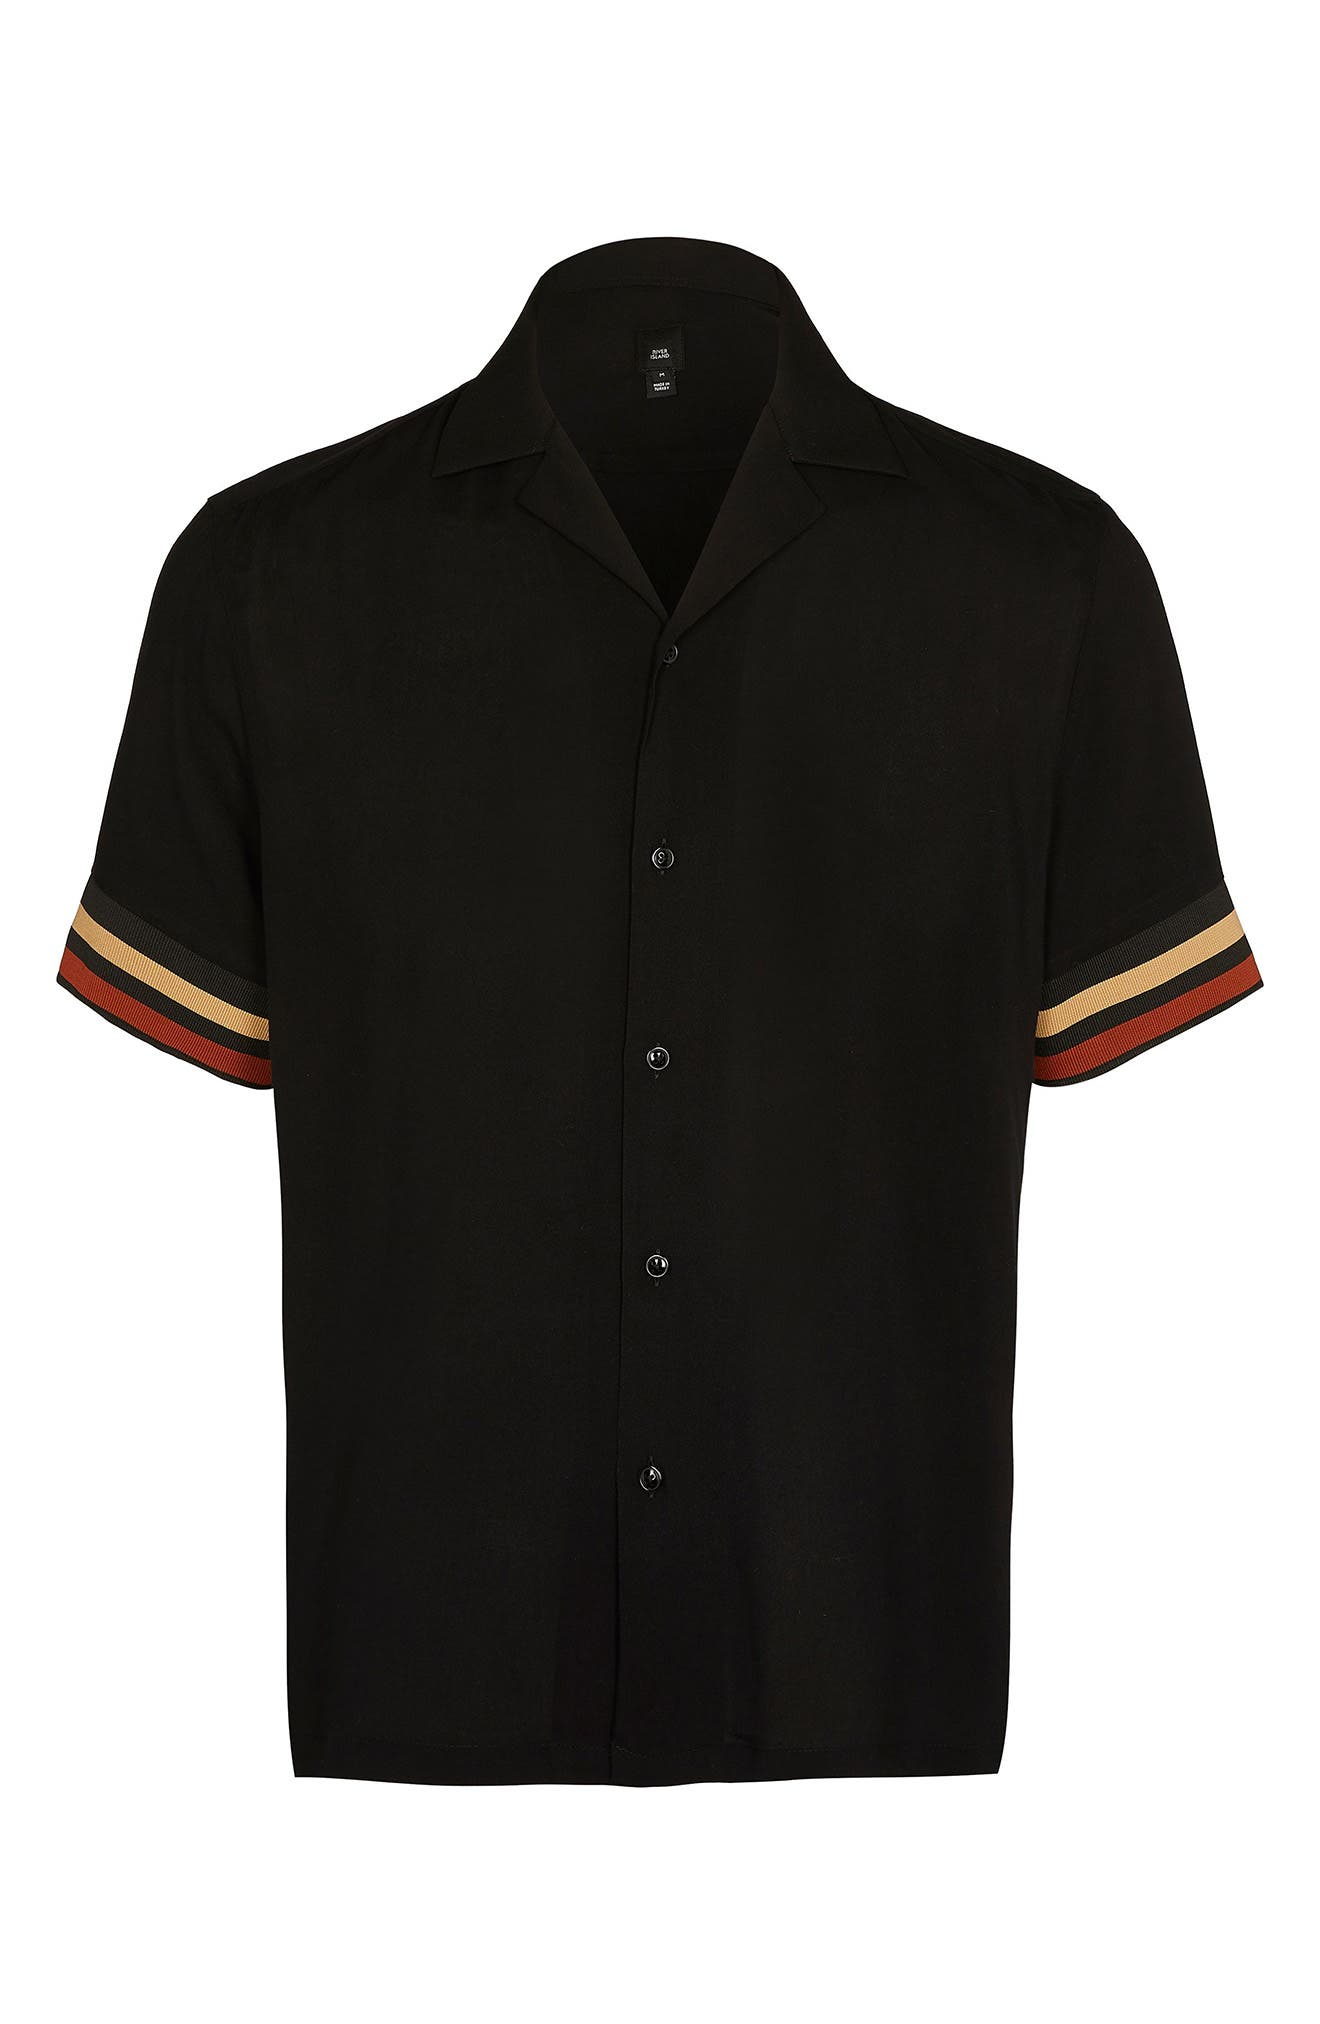 1960s Men's Clothing Mens River Island Tipped Stripe Revere Button-Up Shirt Size Small - Black $50.00 AT vintagedancer.com